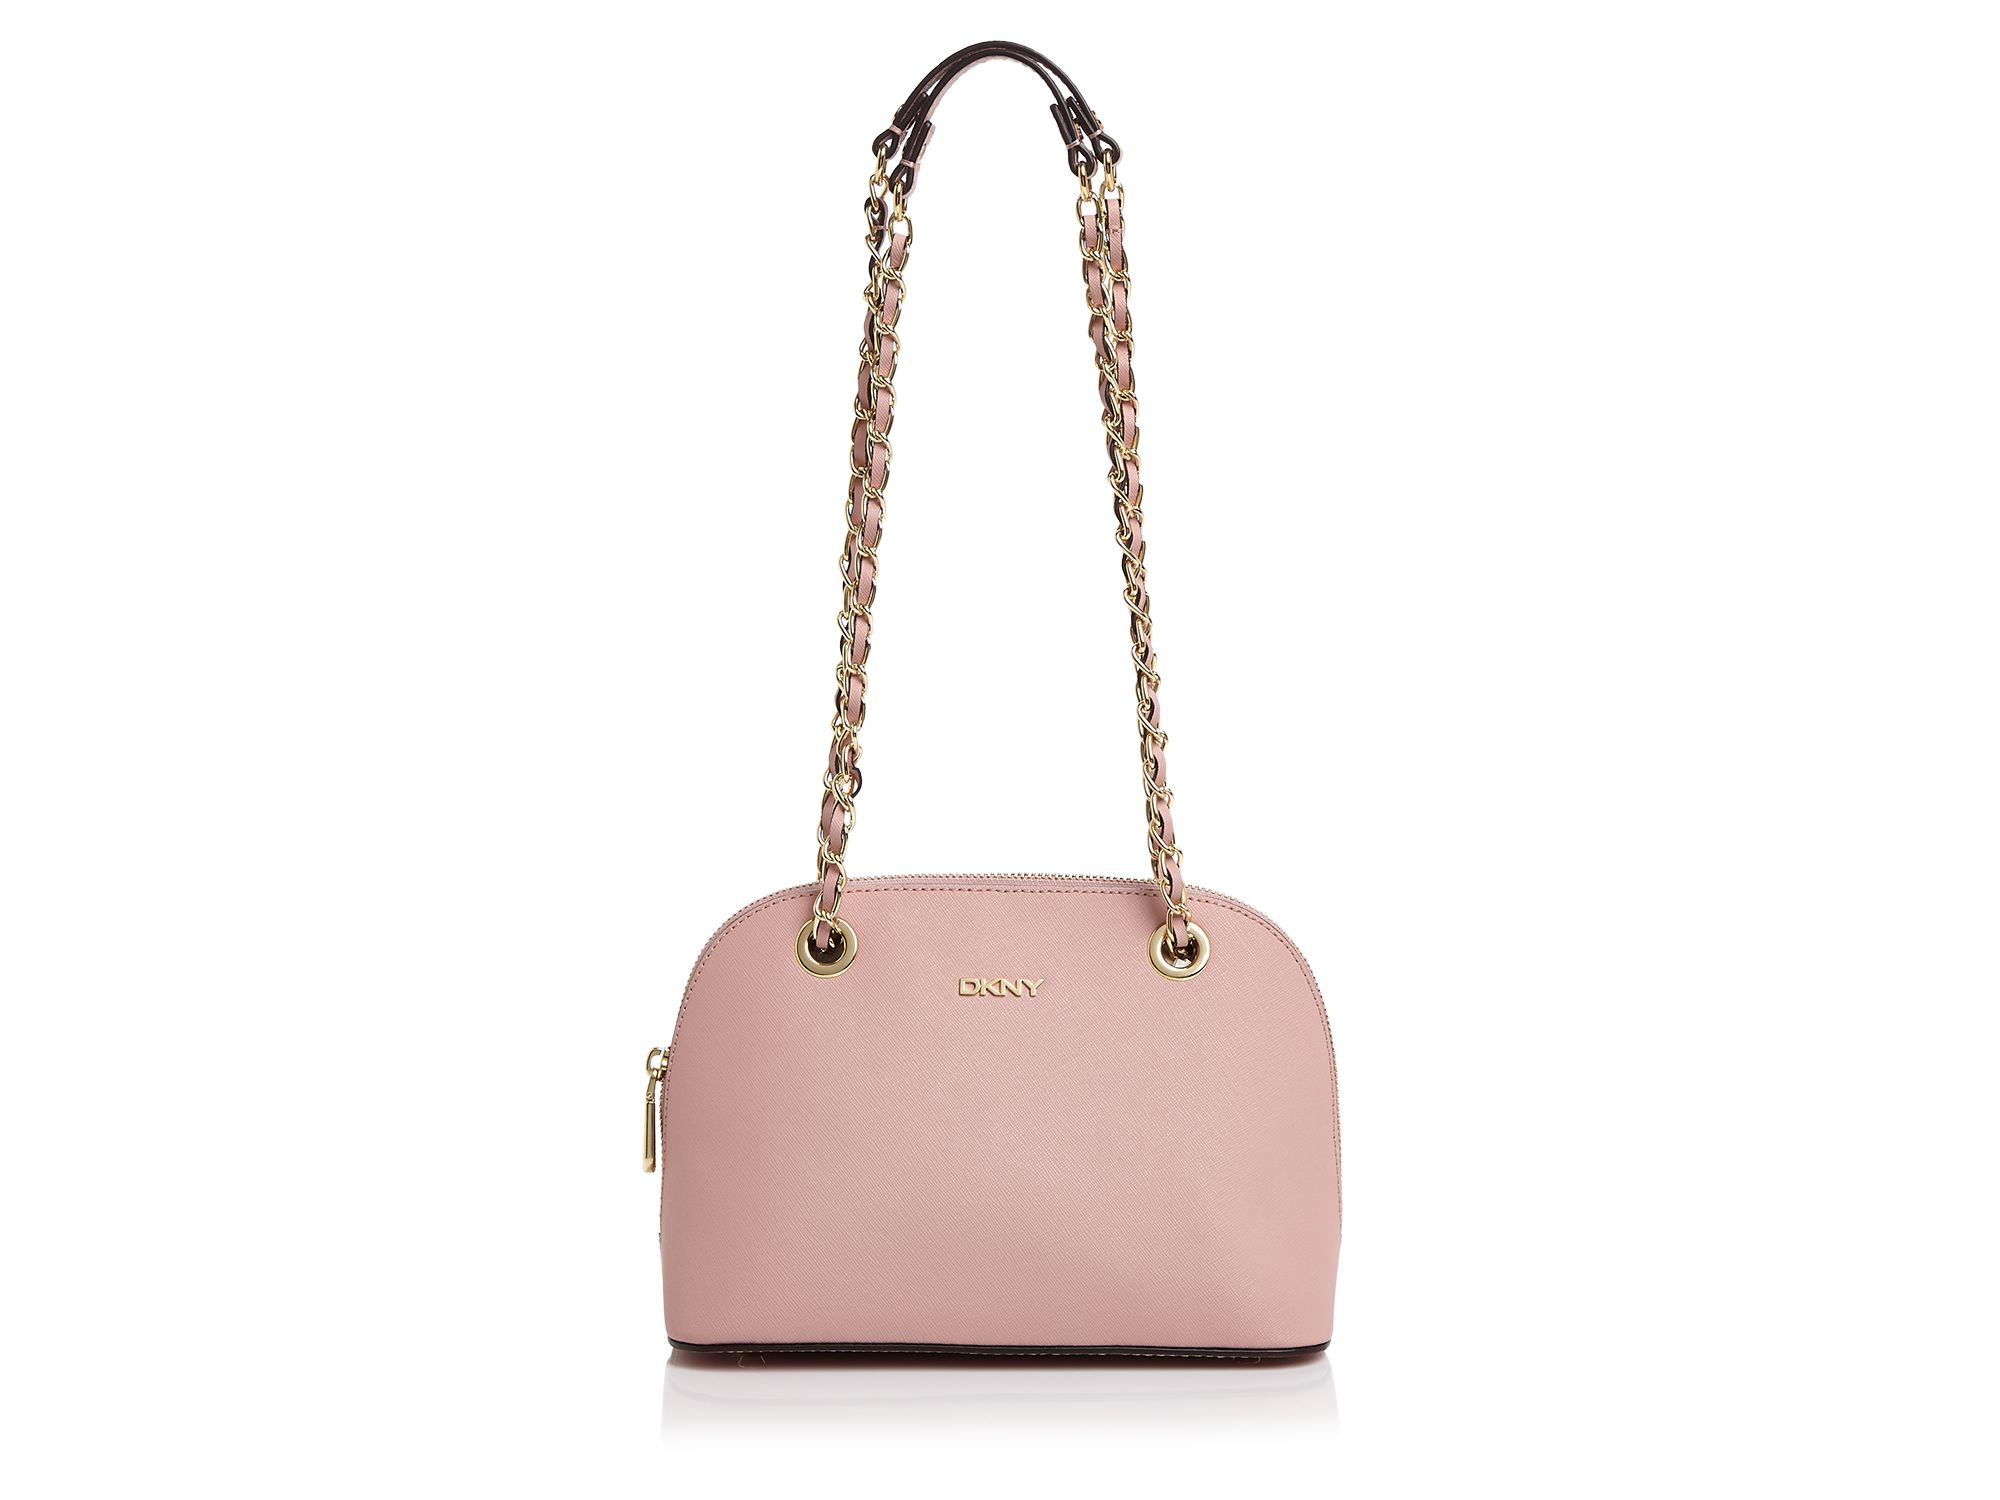 2372fc4f3 DKNY Bryant Park Saffiano Small Round Crossbody in Pink - Lyst